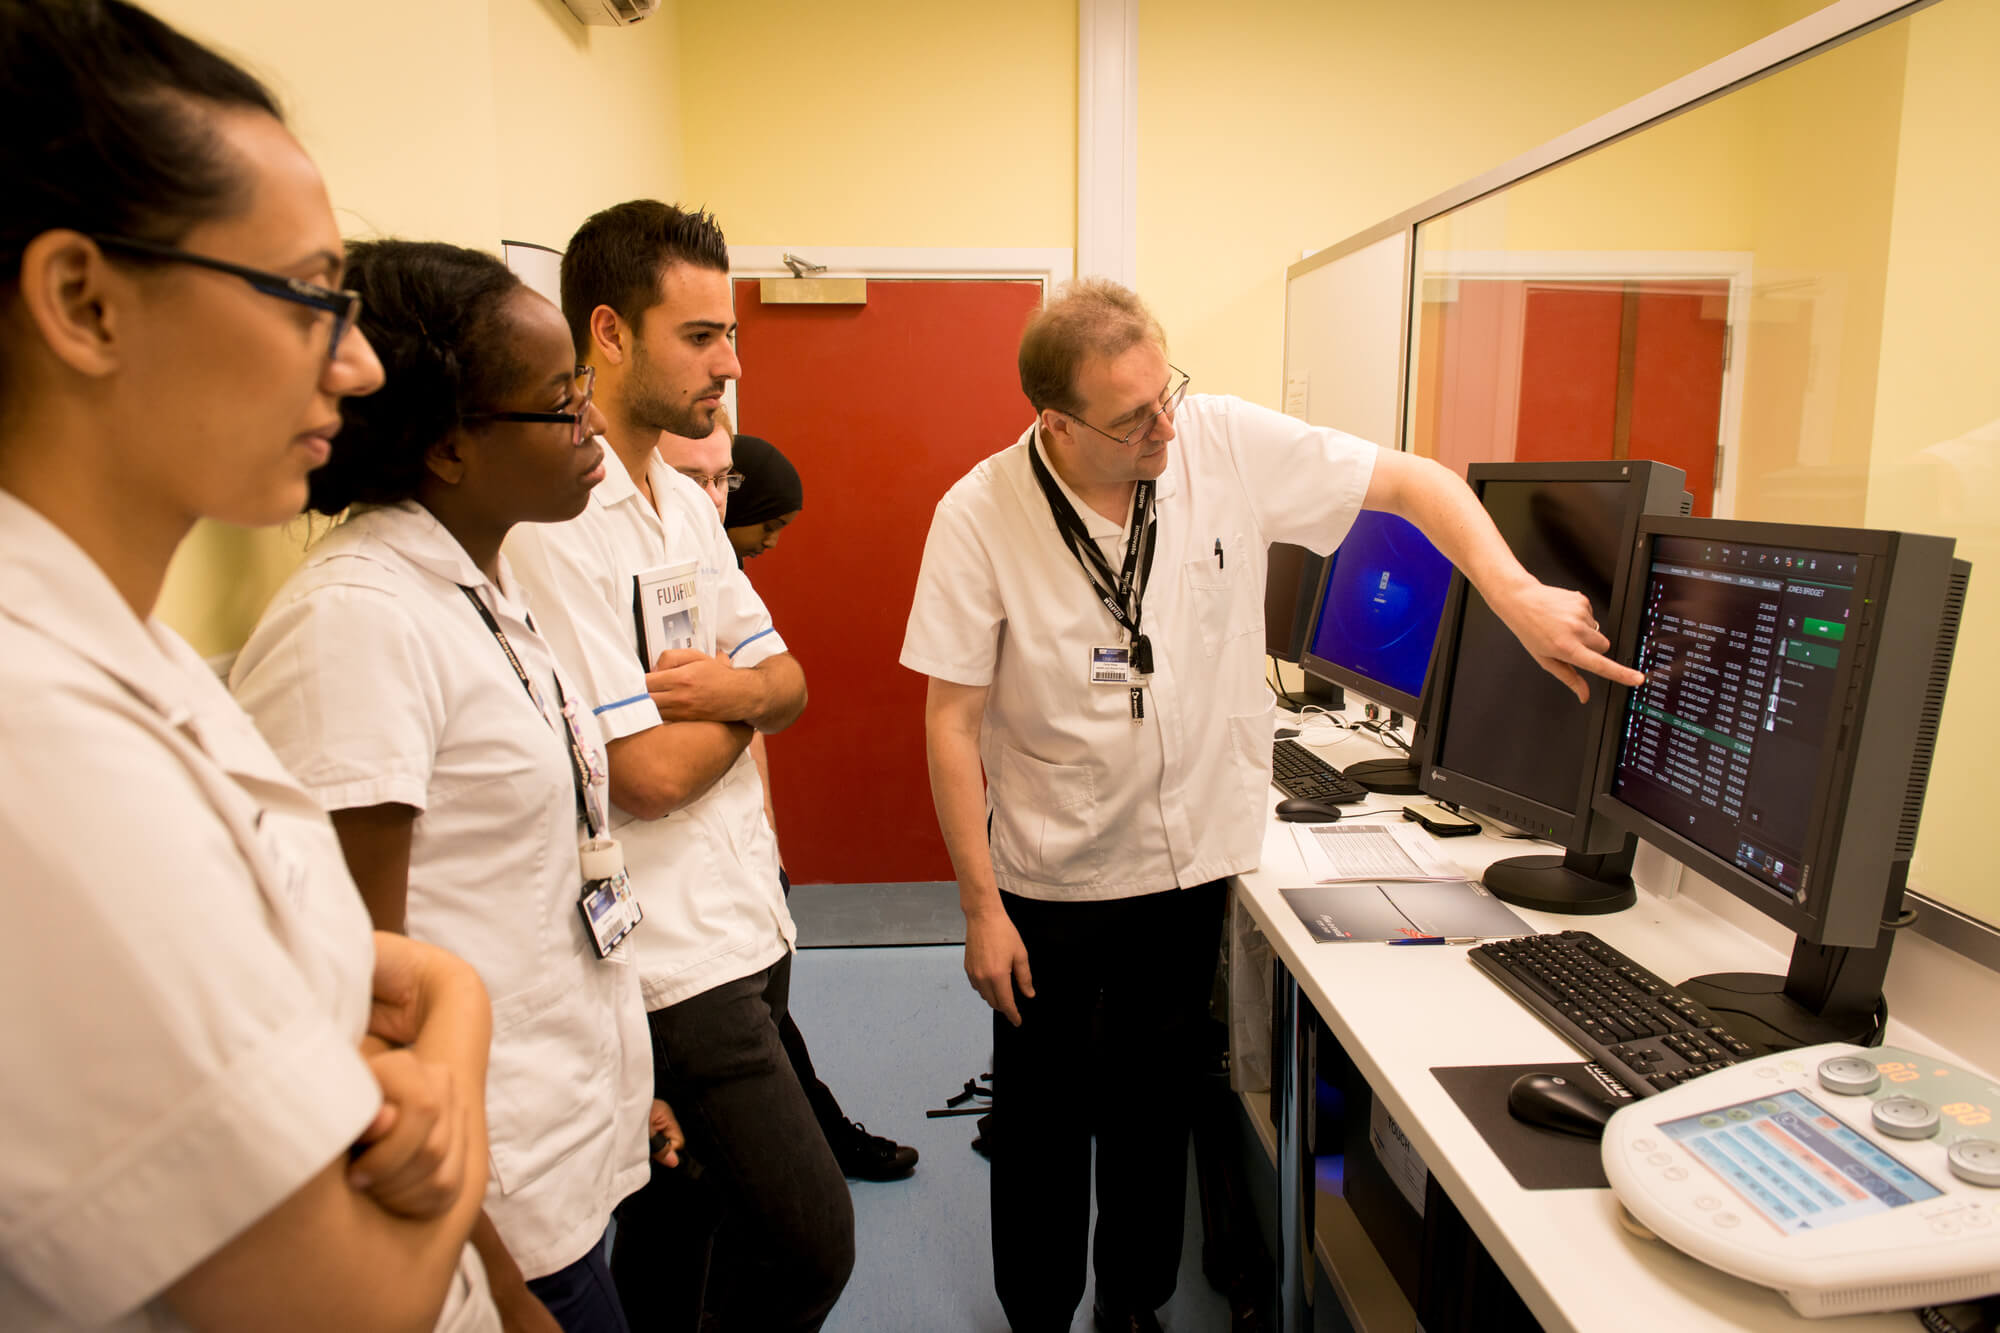 Group of students using diagnostic imaging equipment